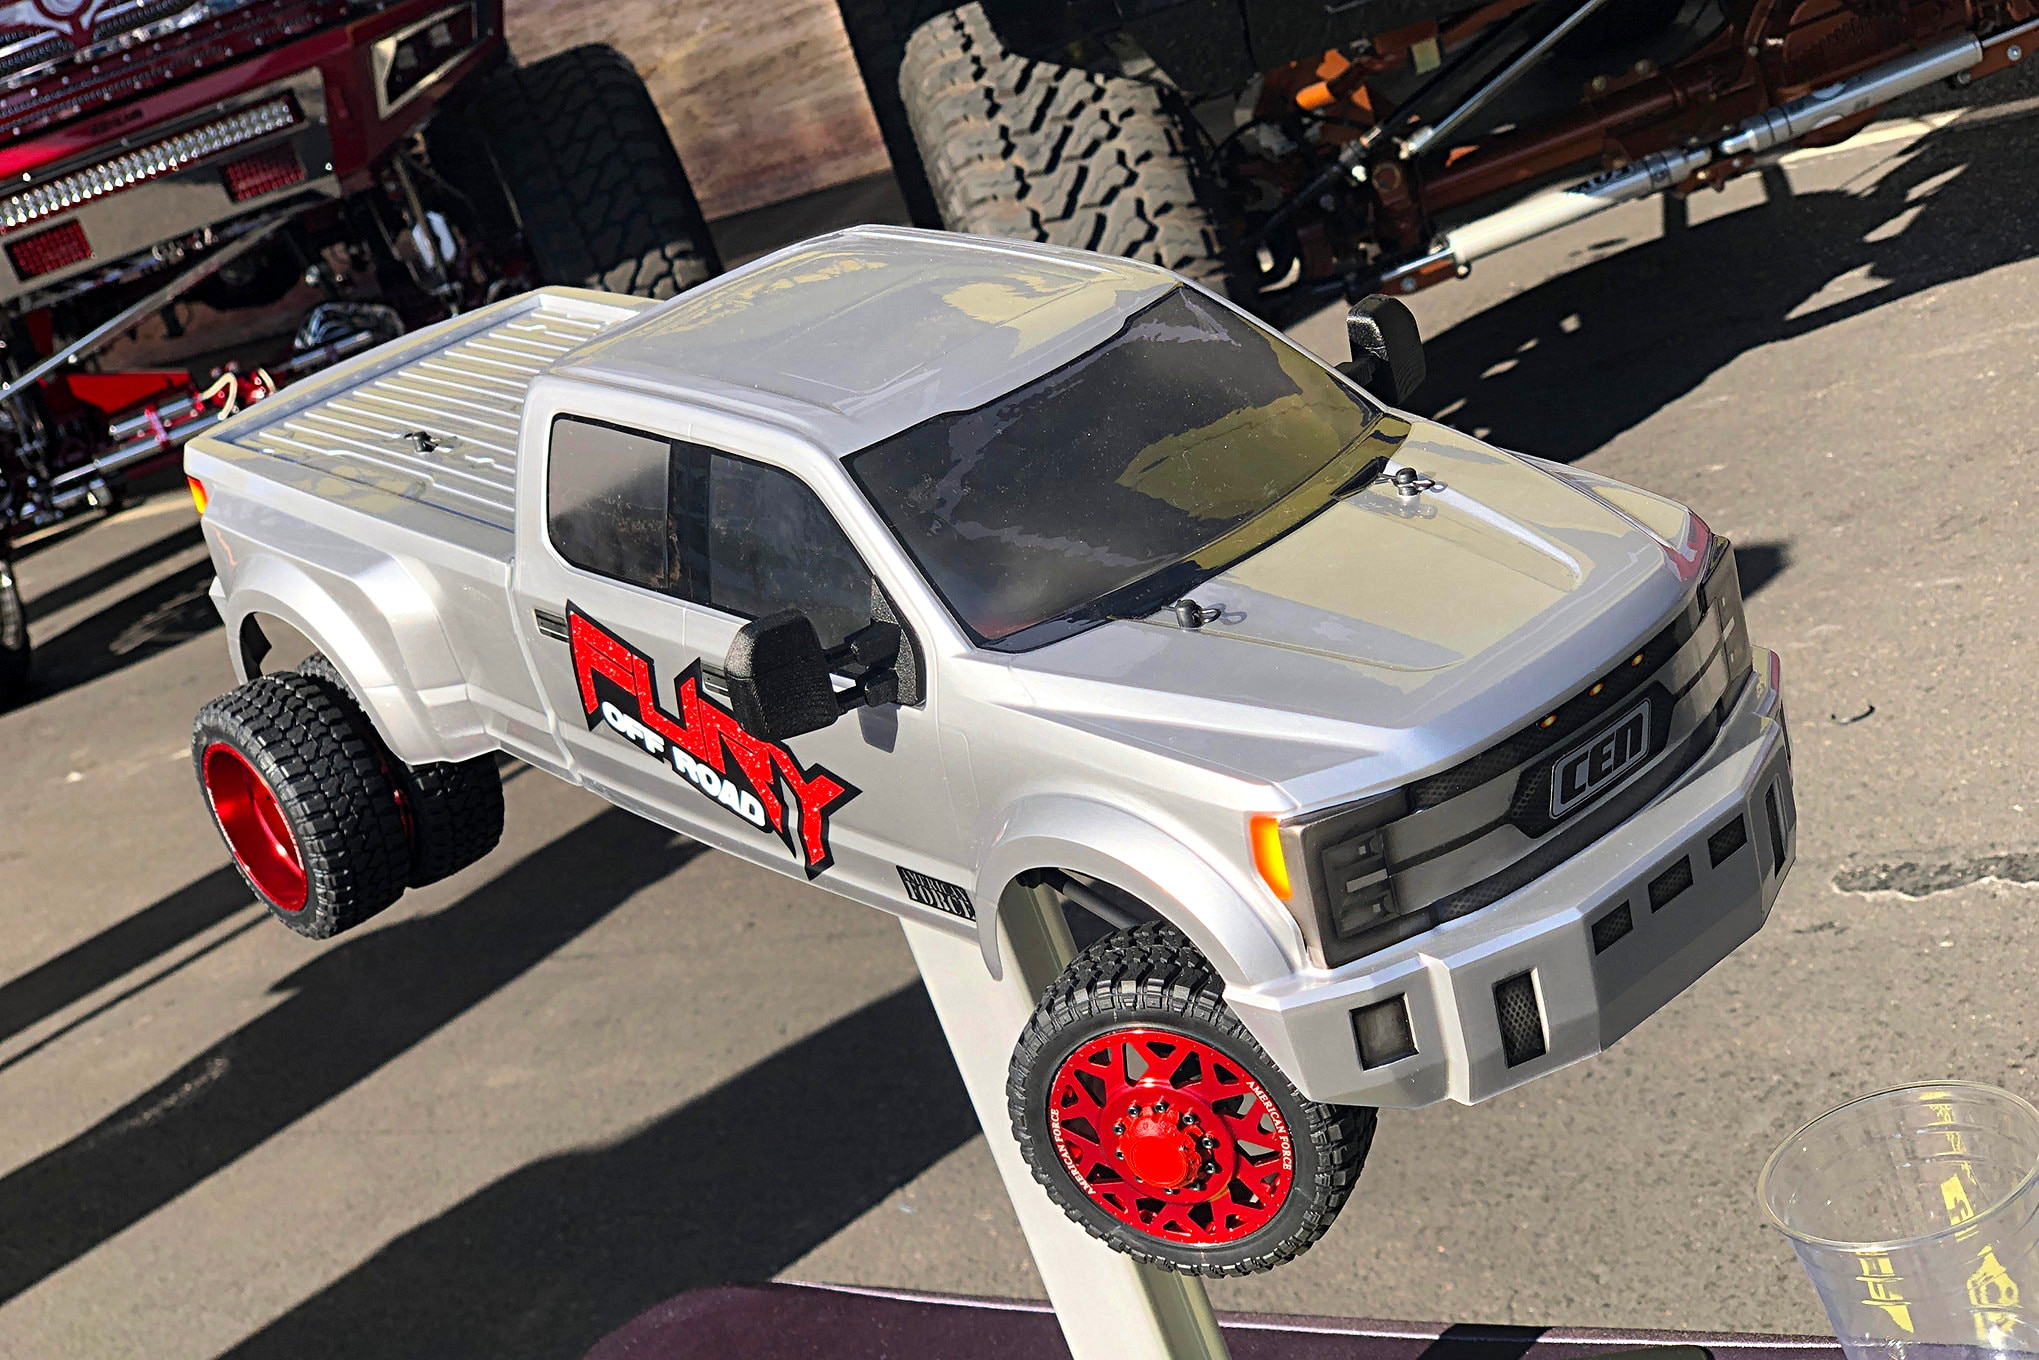 Best Rc Cars 2021 Top 20 RC Cars and Trucks of SEMA